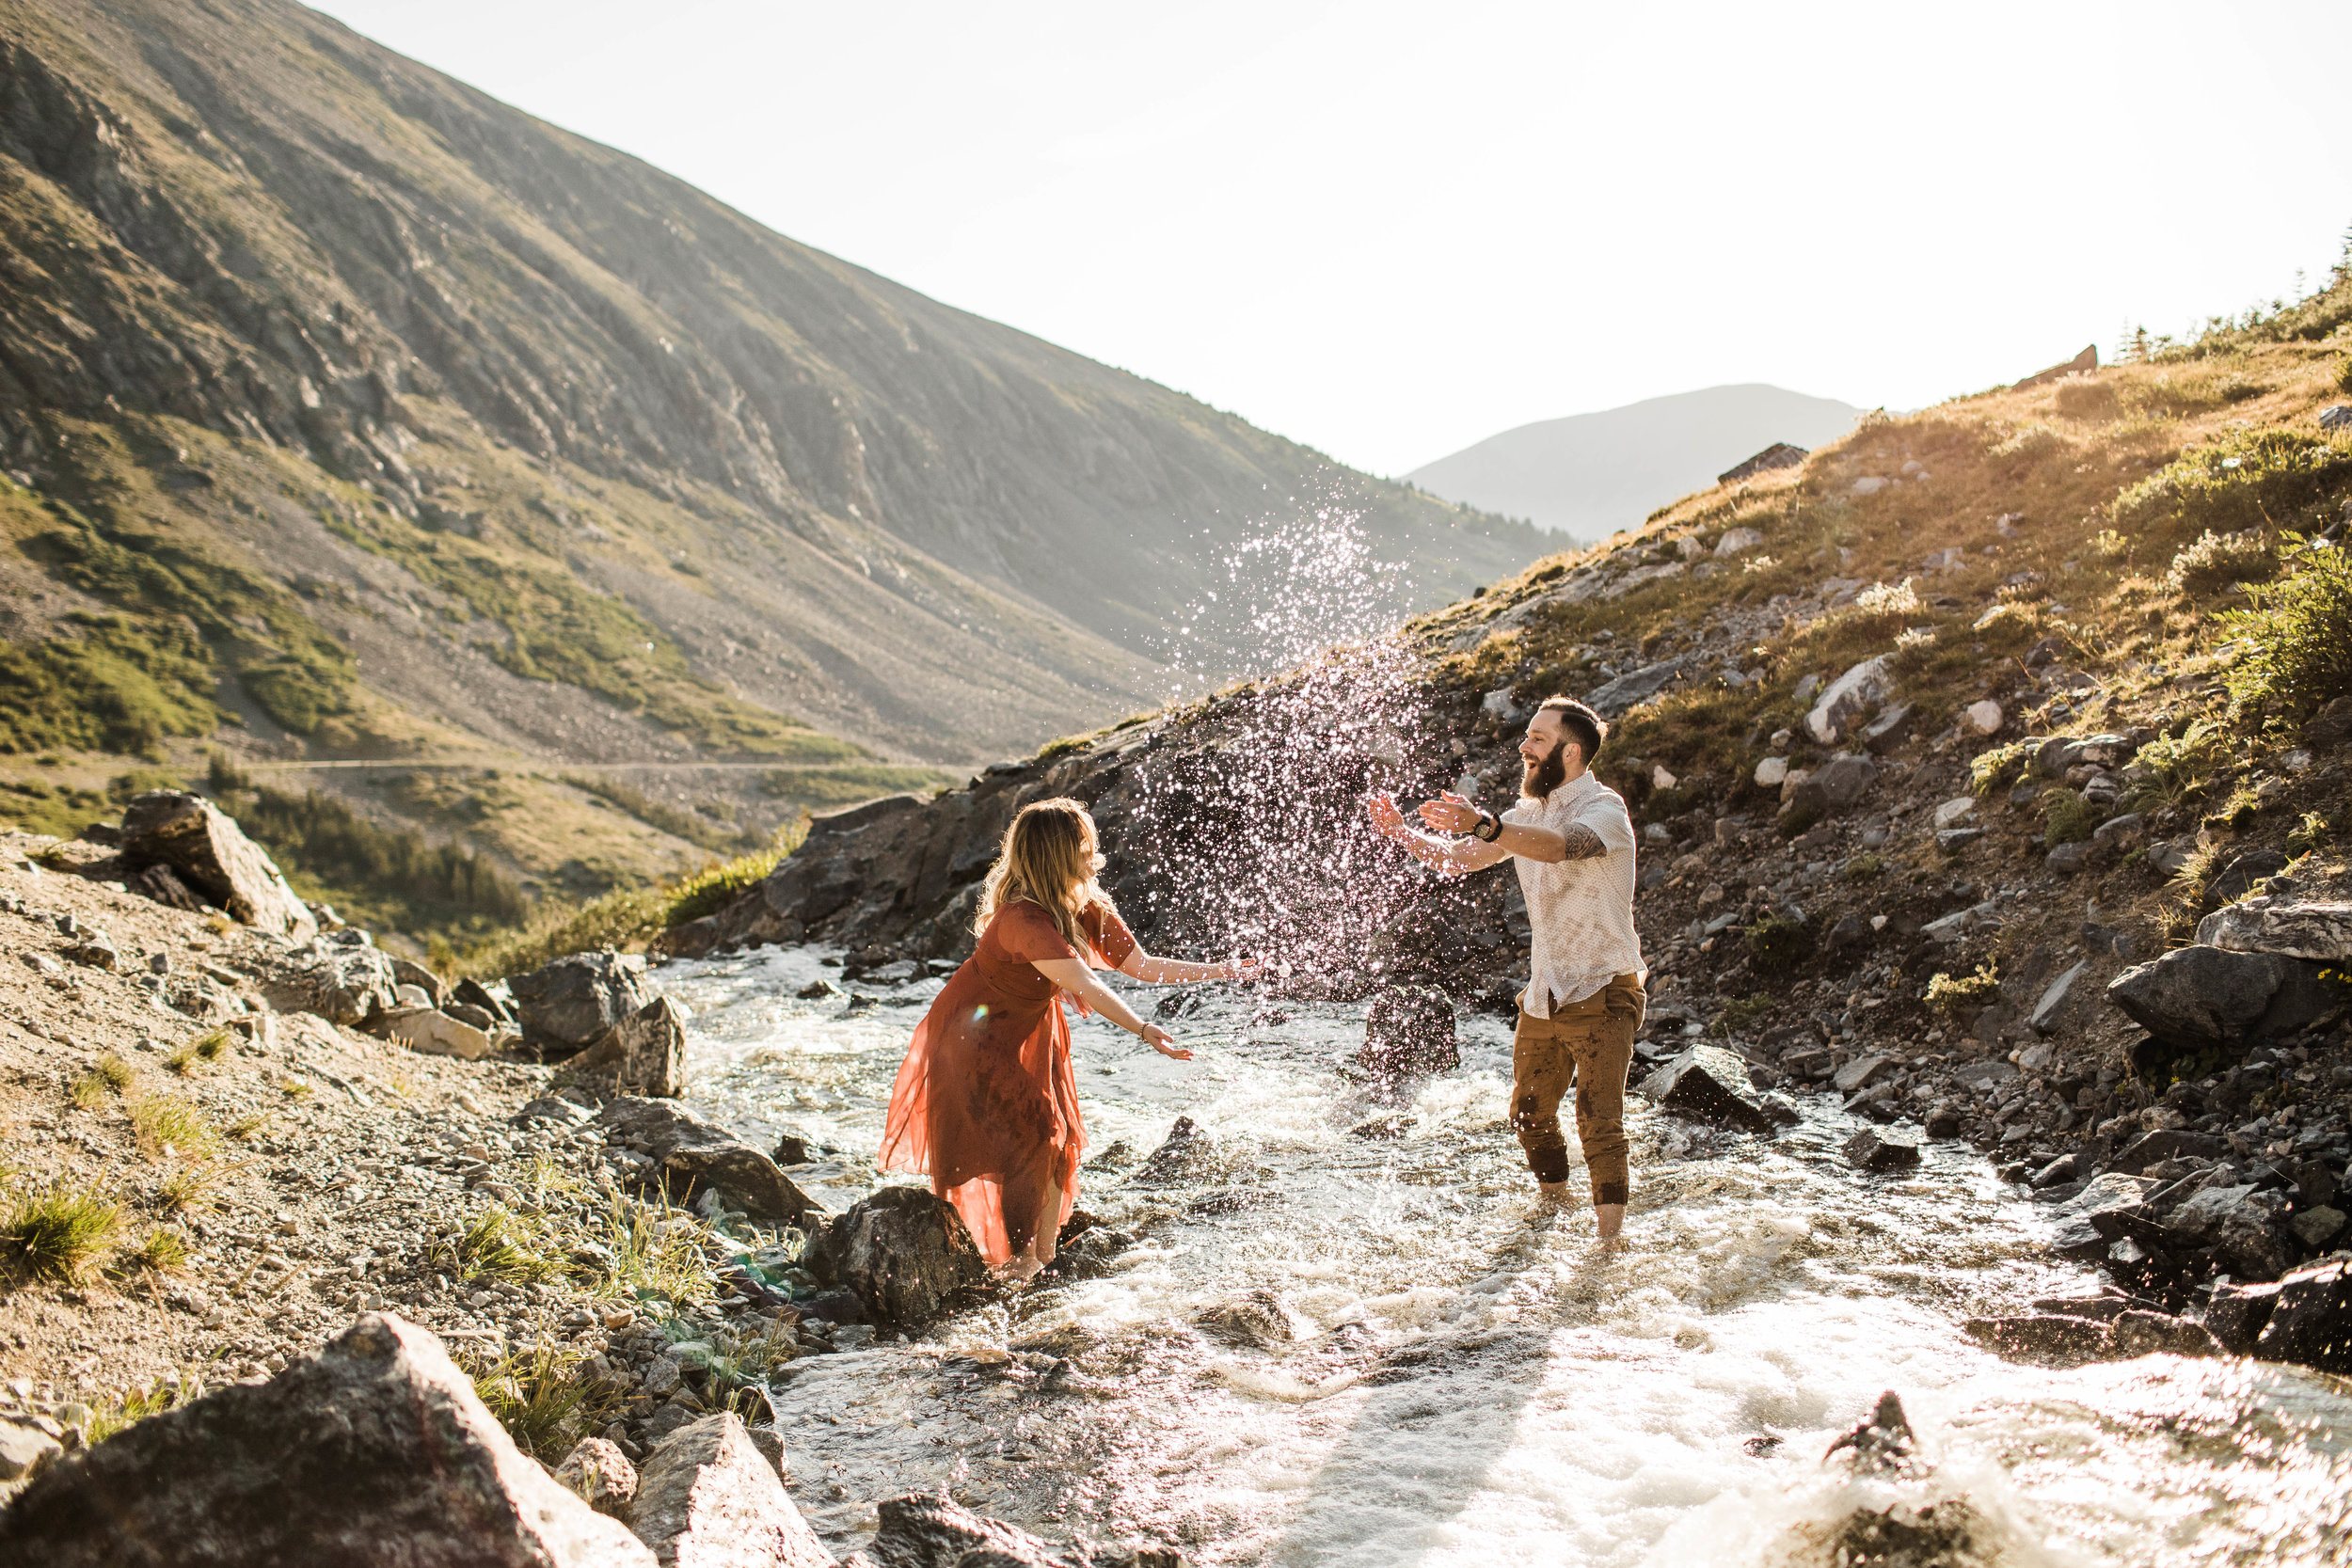 eloping couple splashing around in a creek during their adventurous engagement photos in the mountains of Colorado | Breckenridge Colorado wedding photographers